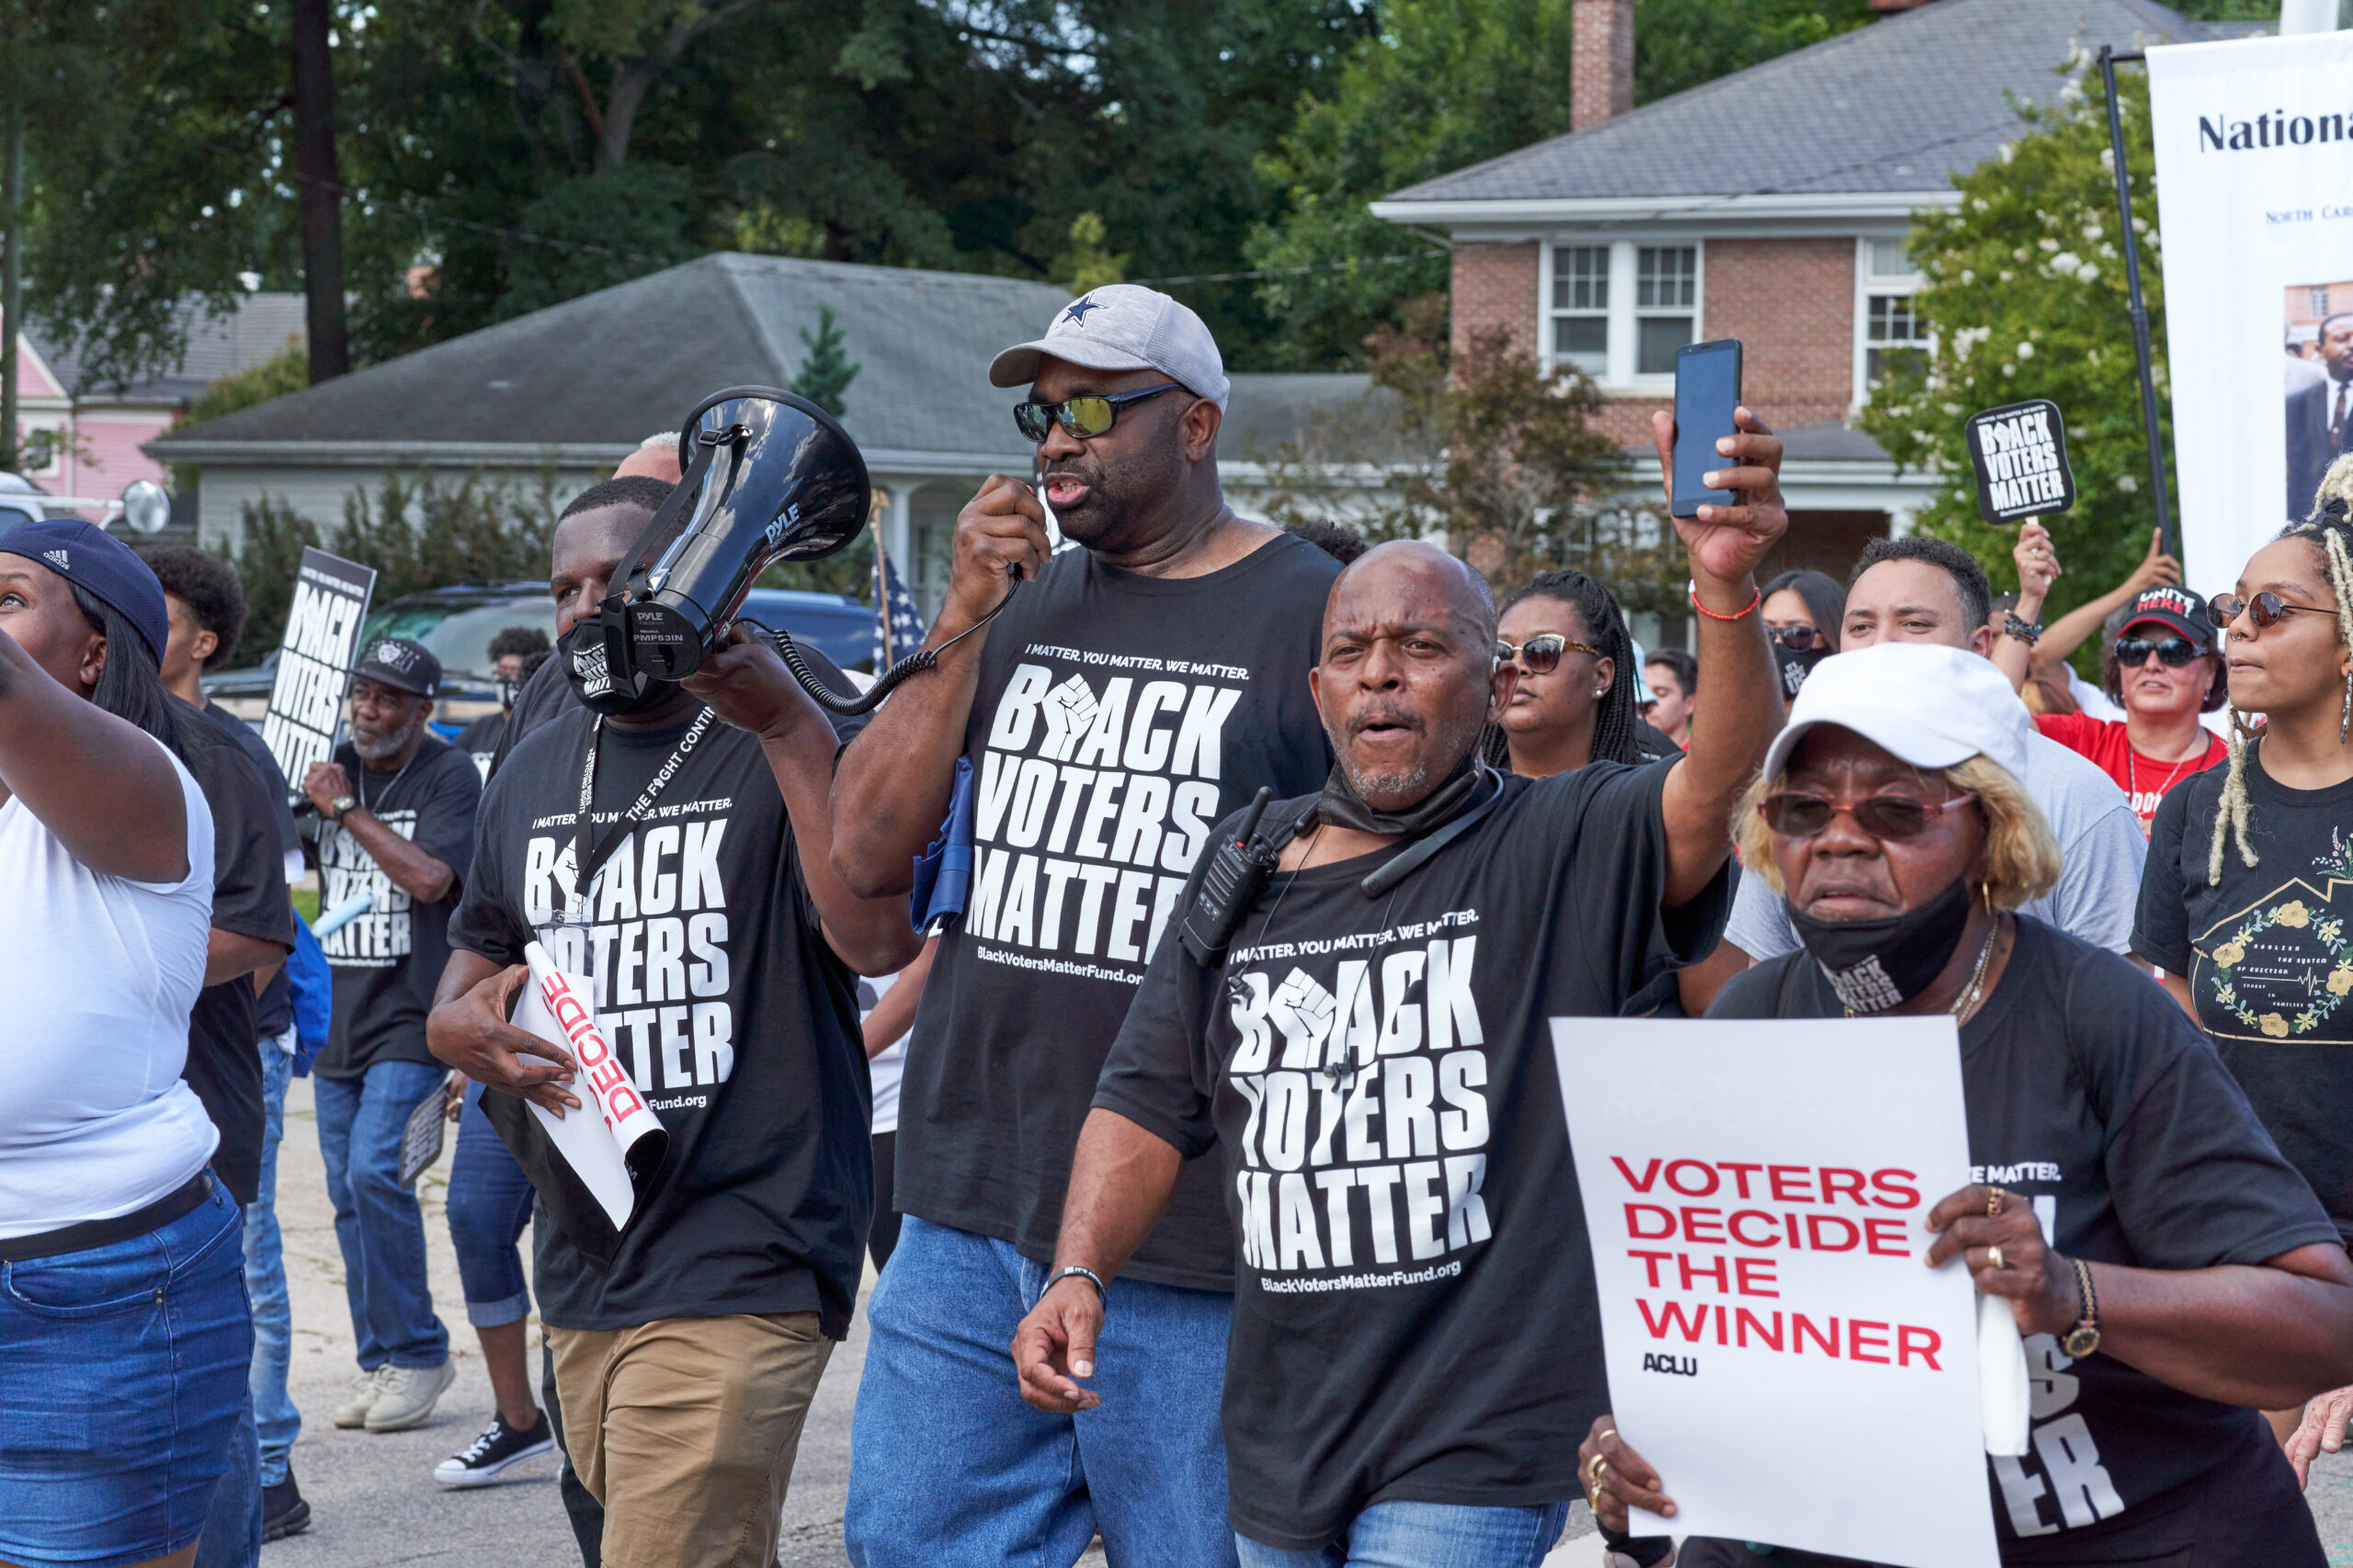 Black Voters Matter: Brnovich Decision Is Not Only Dangerous; It's A Political Attack On Voting Rights In America